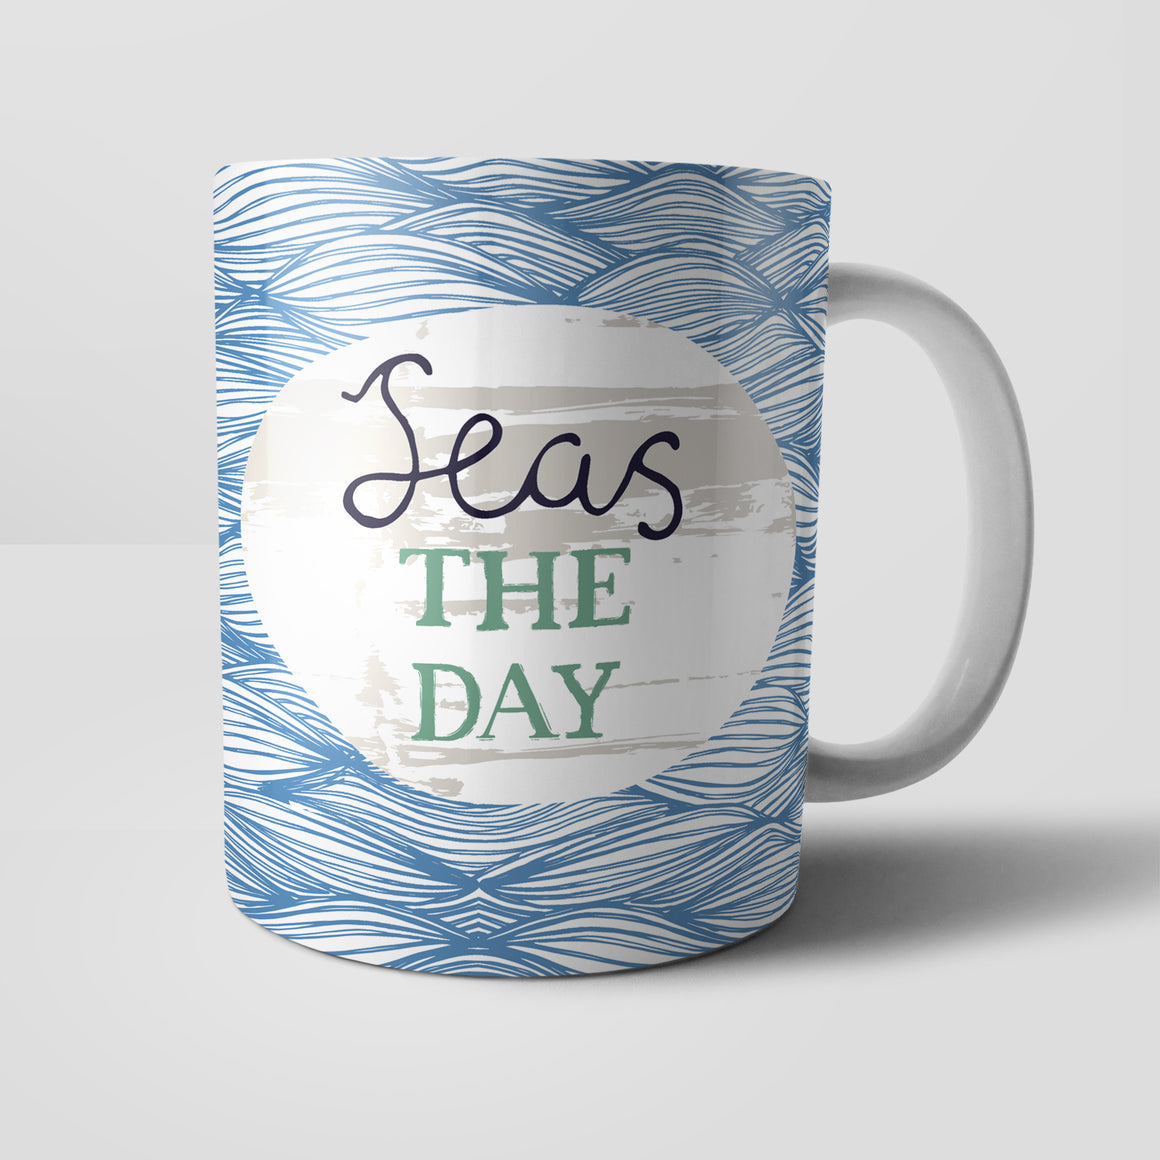 Seas The Day Mug by Vicky Yorke Designs